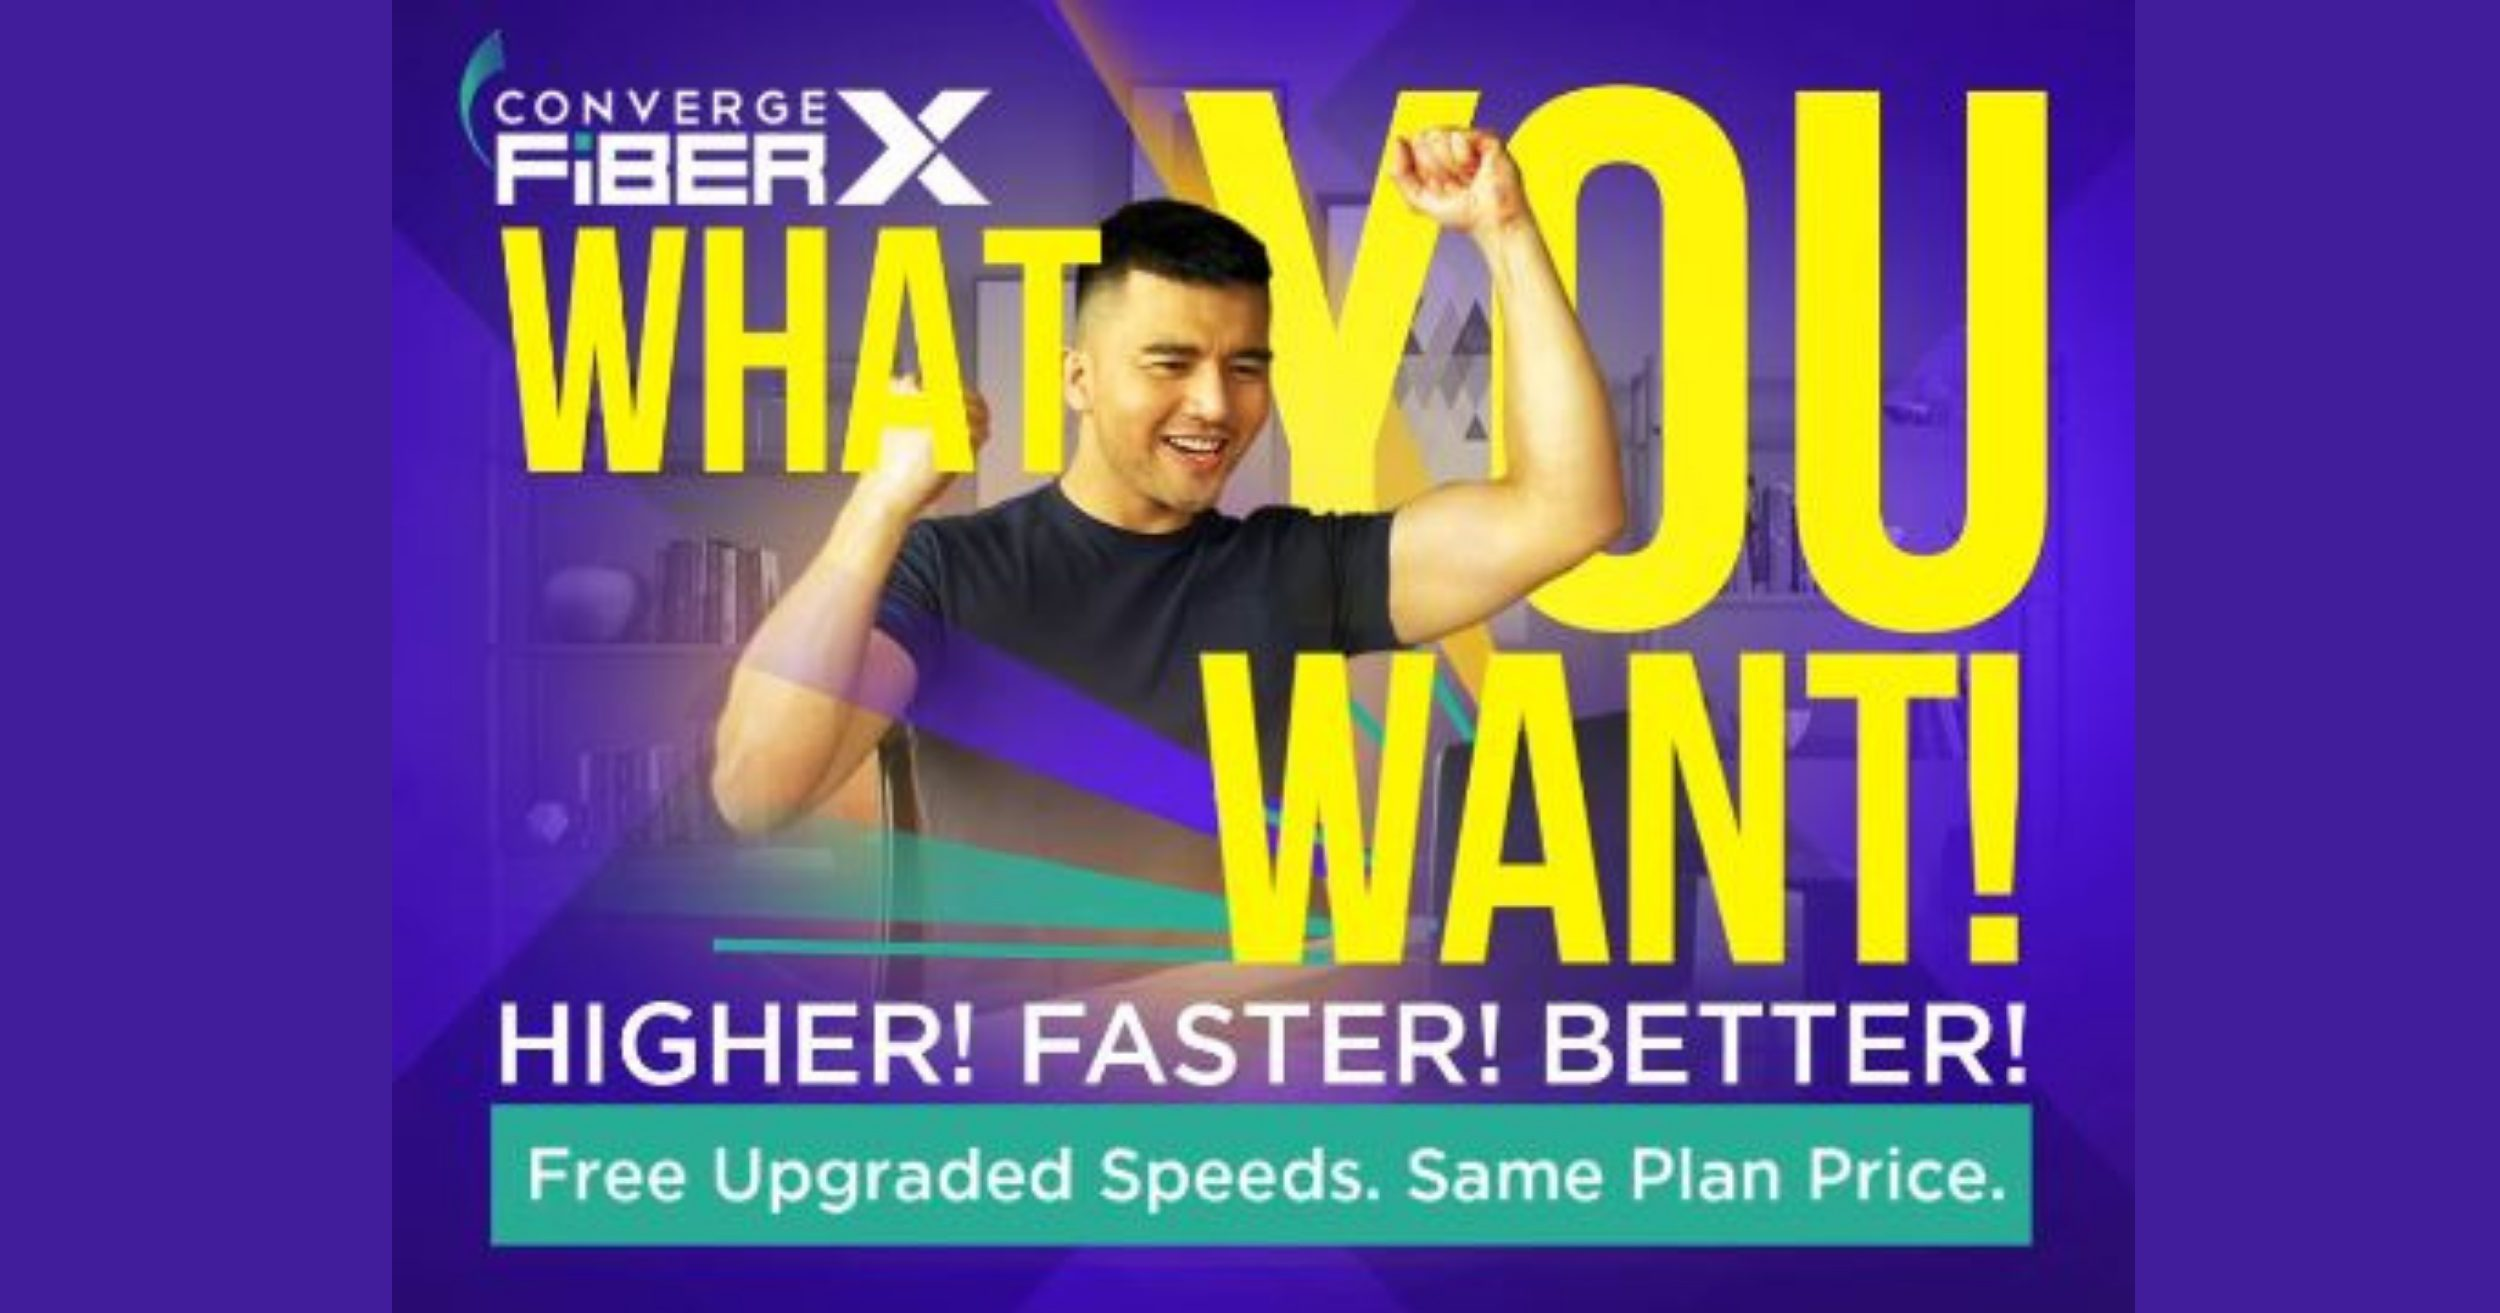 converge-offering-up-to-300mbps-free-speed-upgrade-starting-today